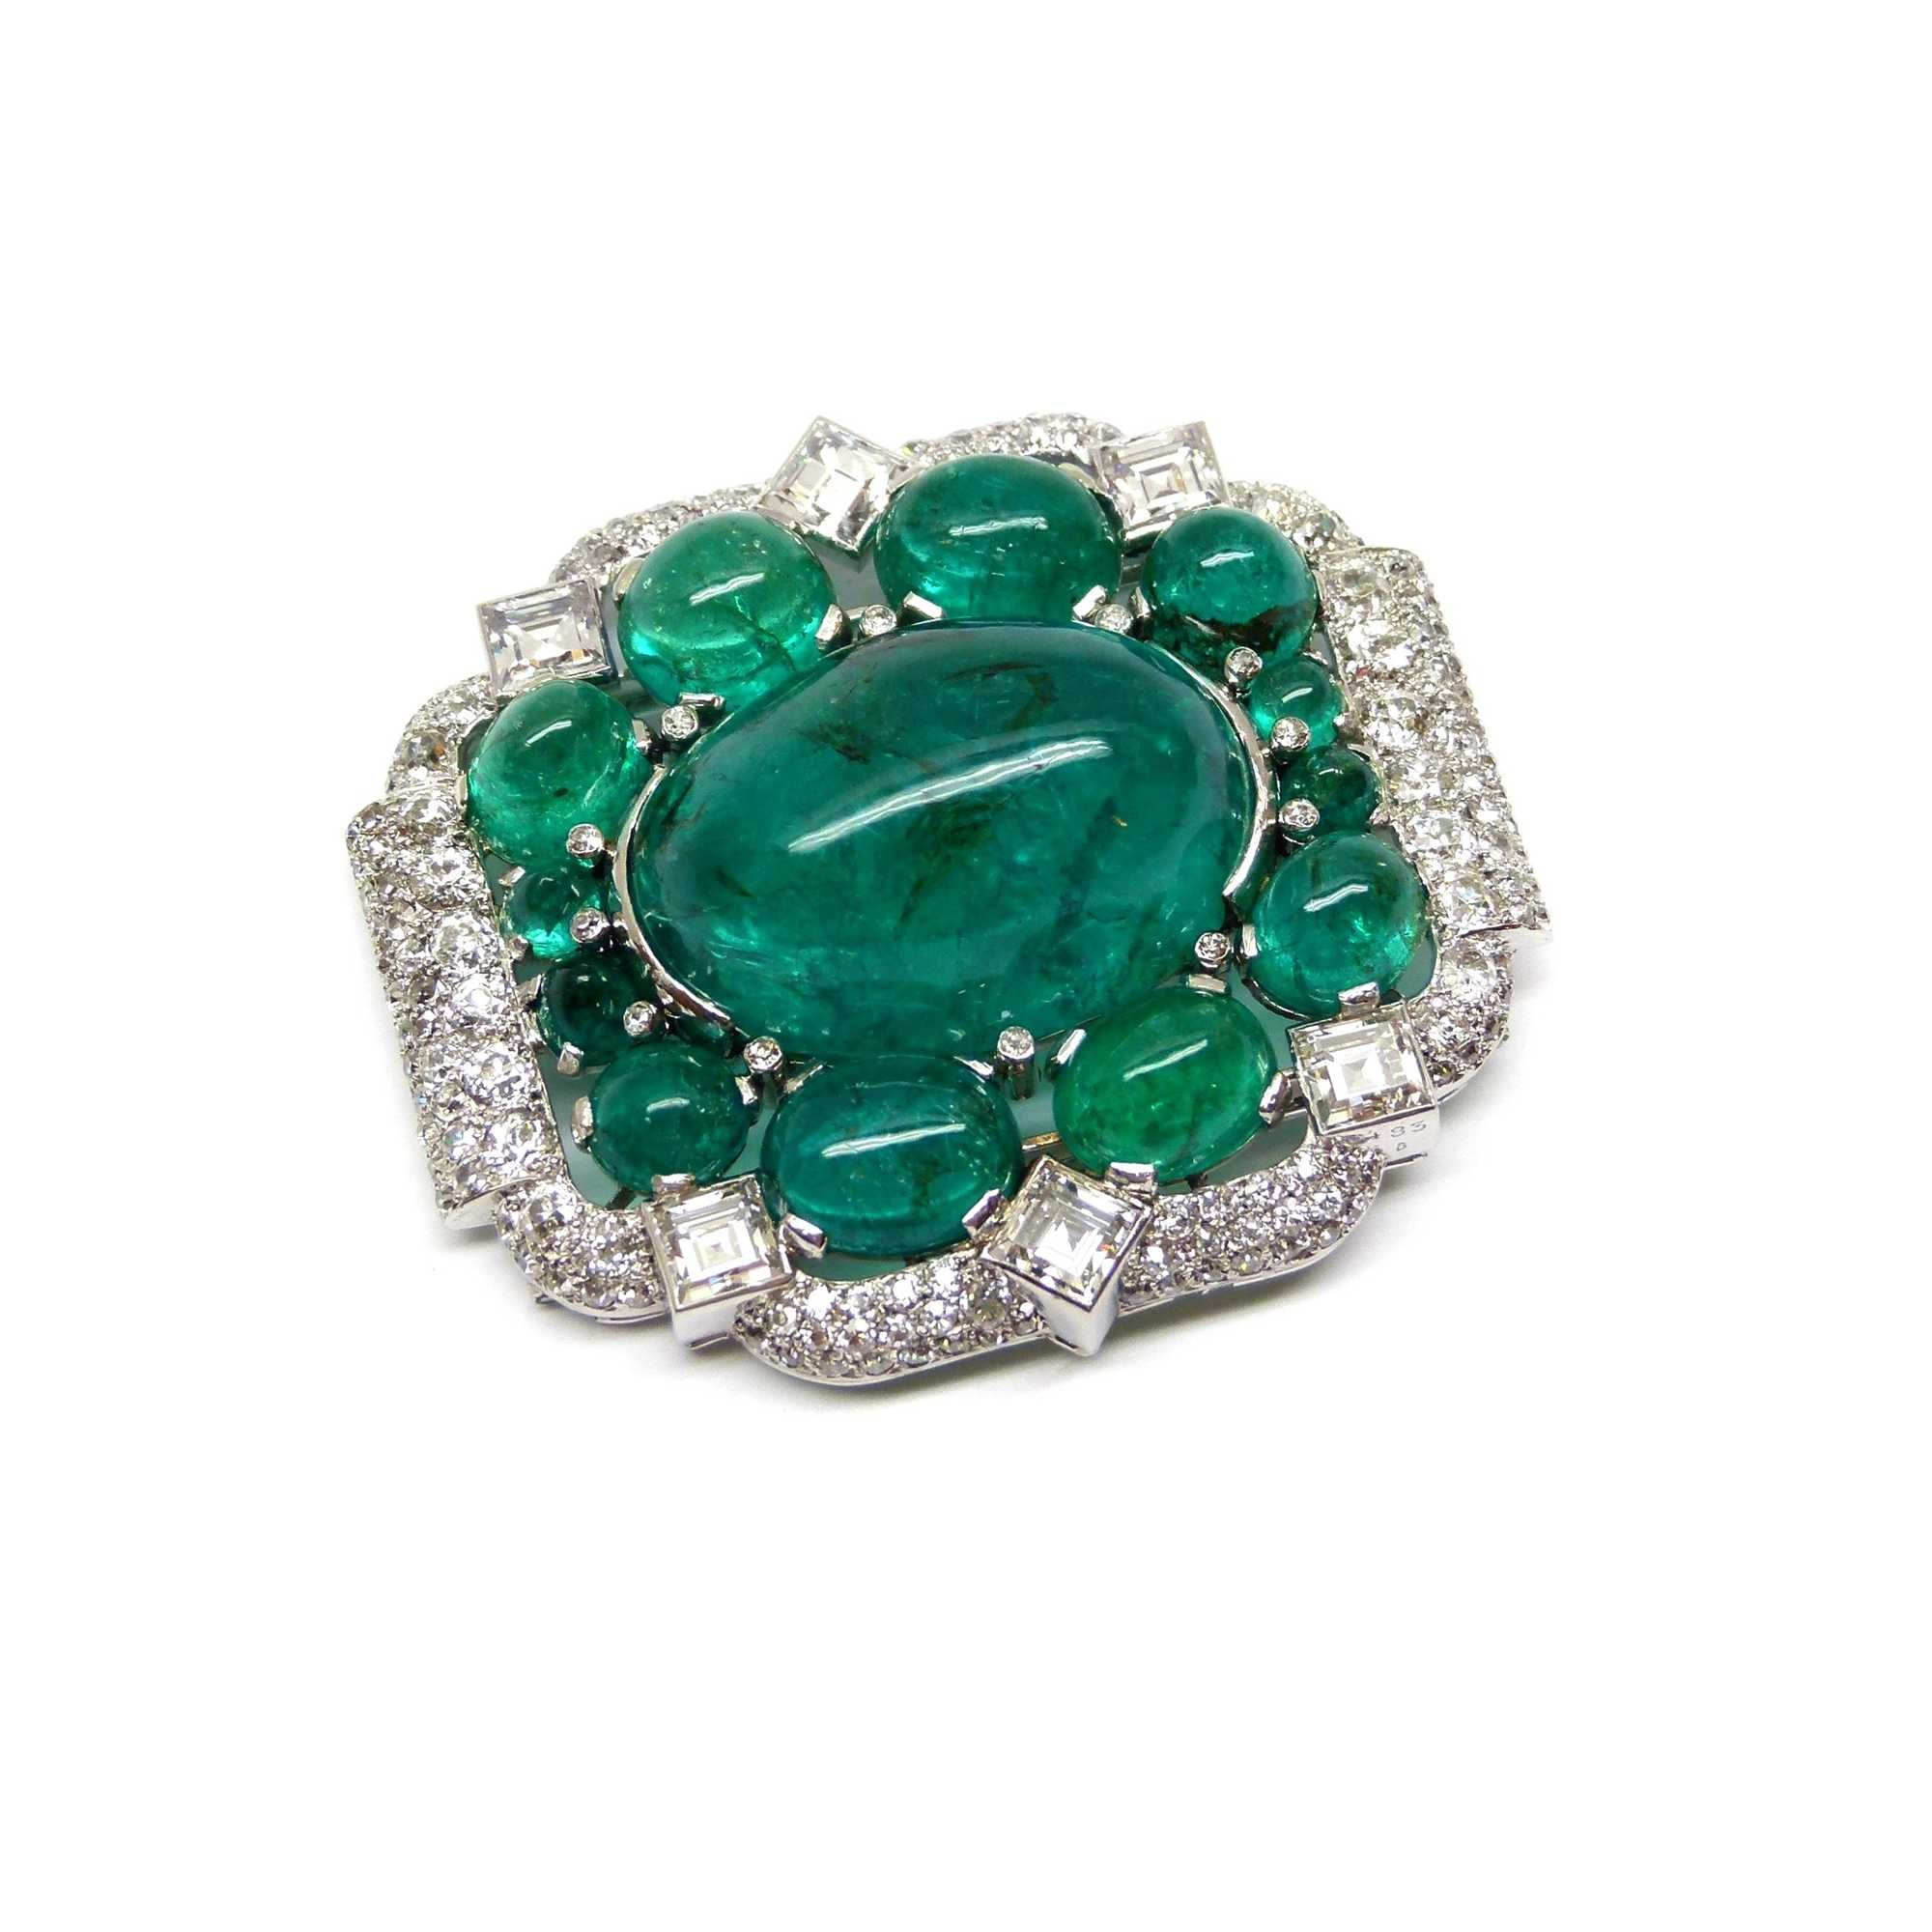 by emerald the felix for necklace pin countess diamond of worn granard cartier and jewelry platinum maria